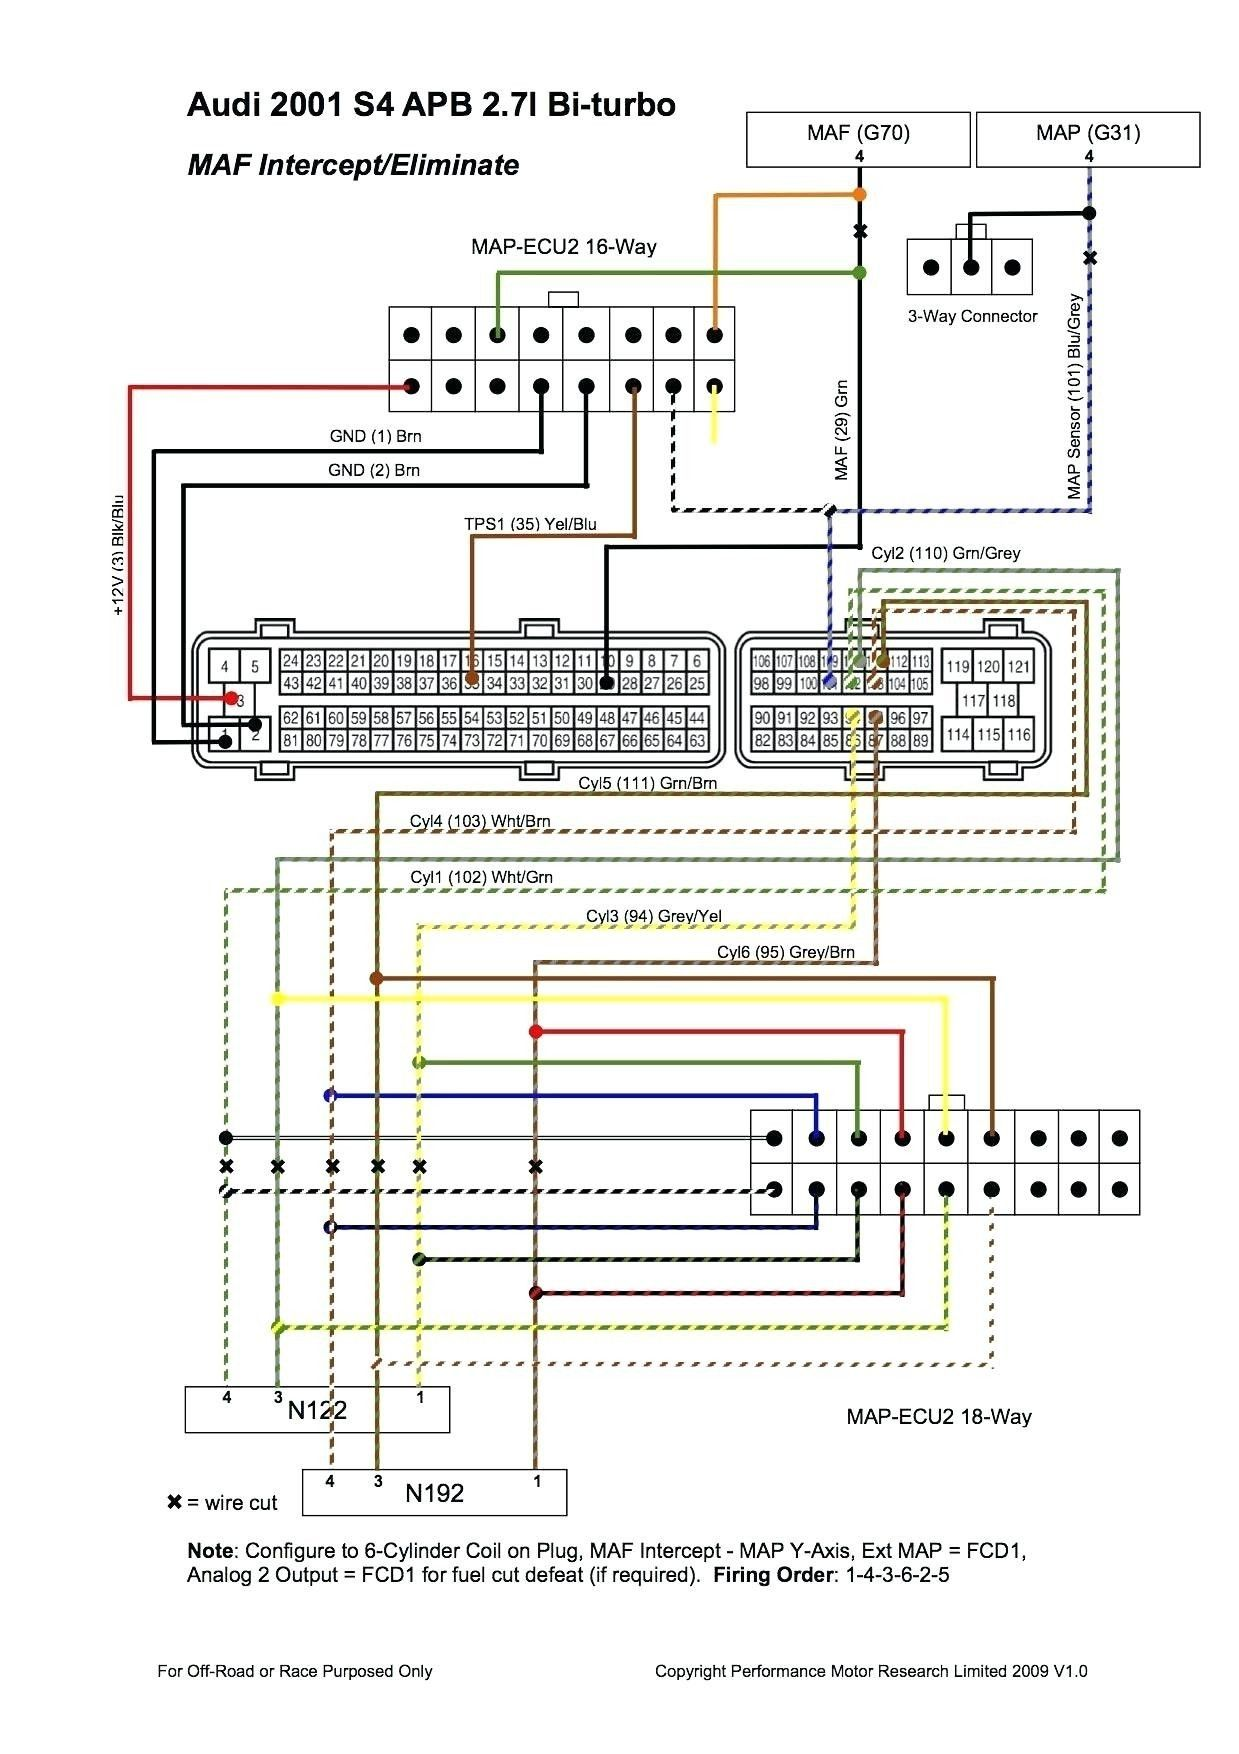 mitsubishi lancer 93 wiring diagram - wiring diagrams button hell -  hell.lamorciola.it  hell.lamorciola.it